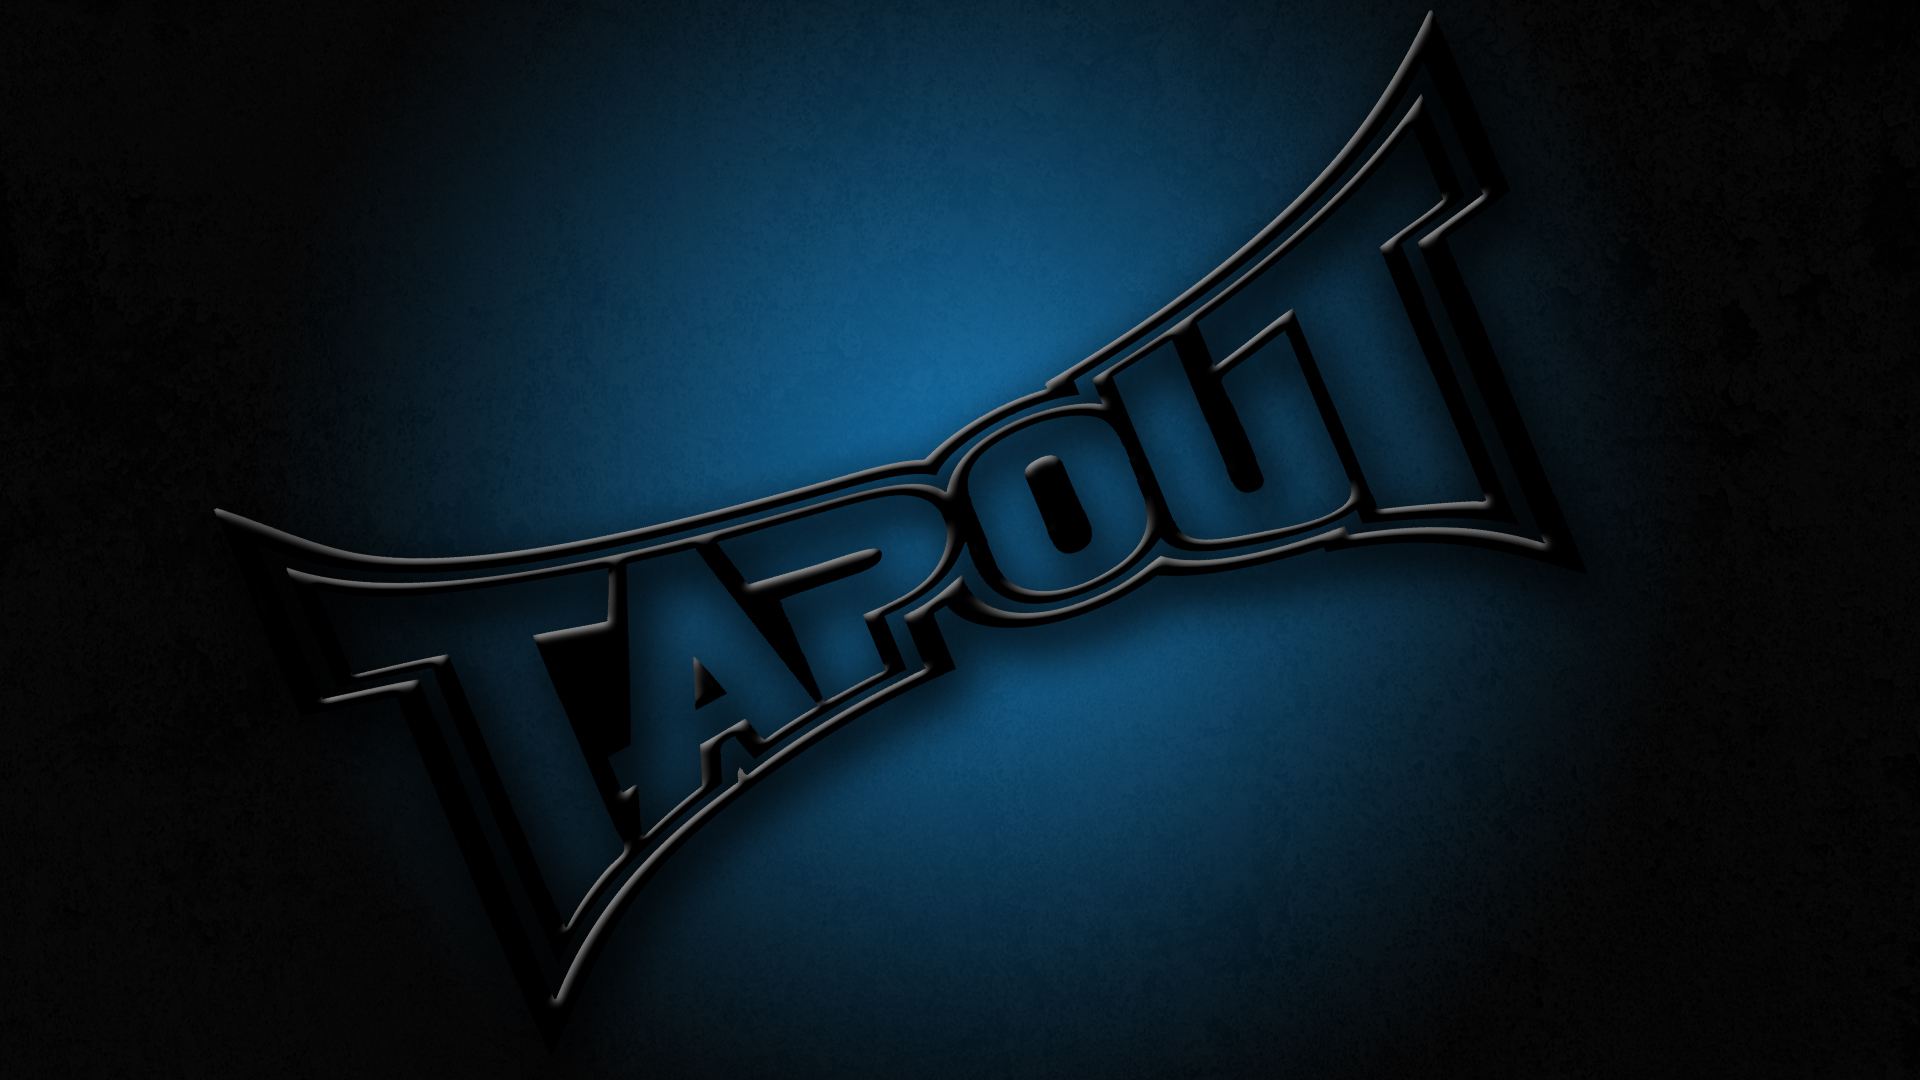 Black Tapout Logo Angled Grunge Background